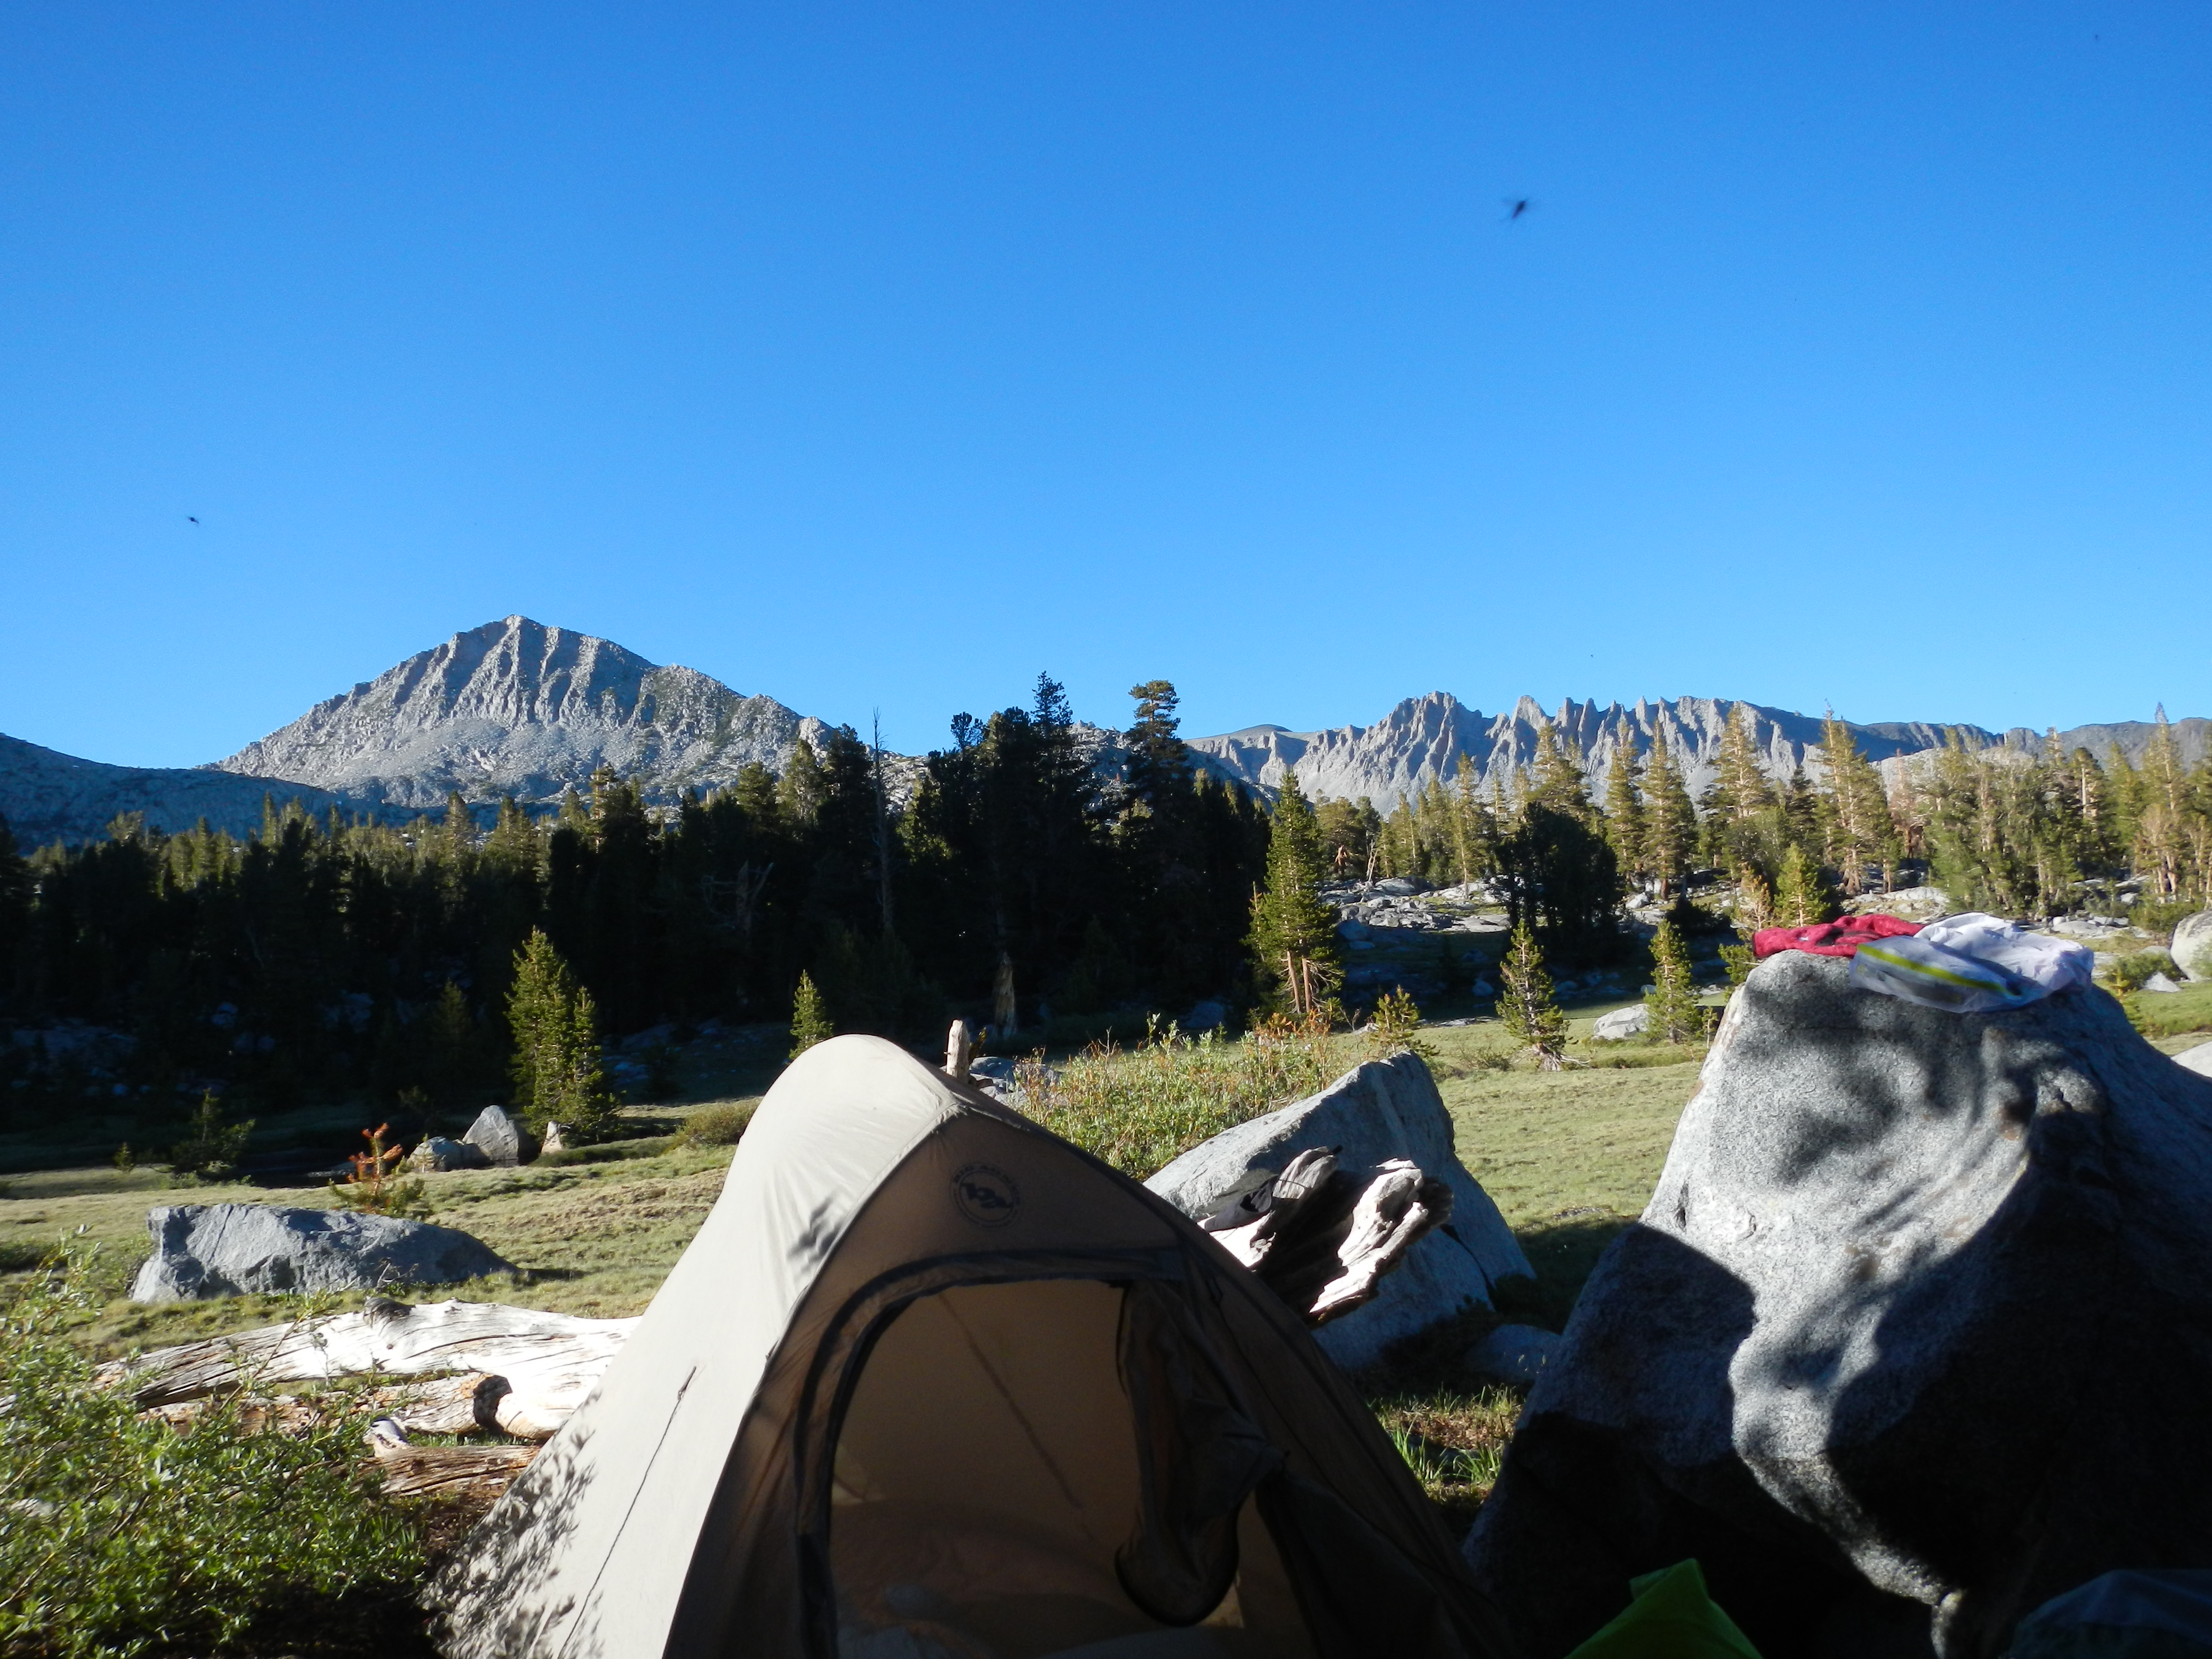 First night's campsite, just below Donahue Pass